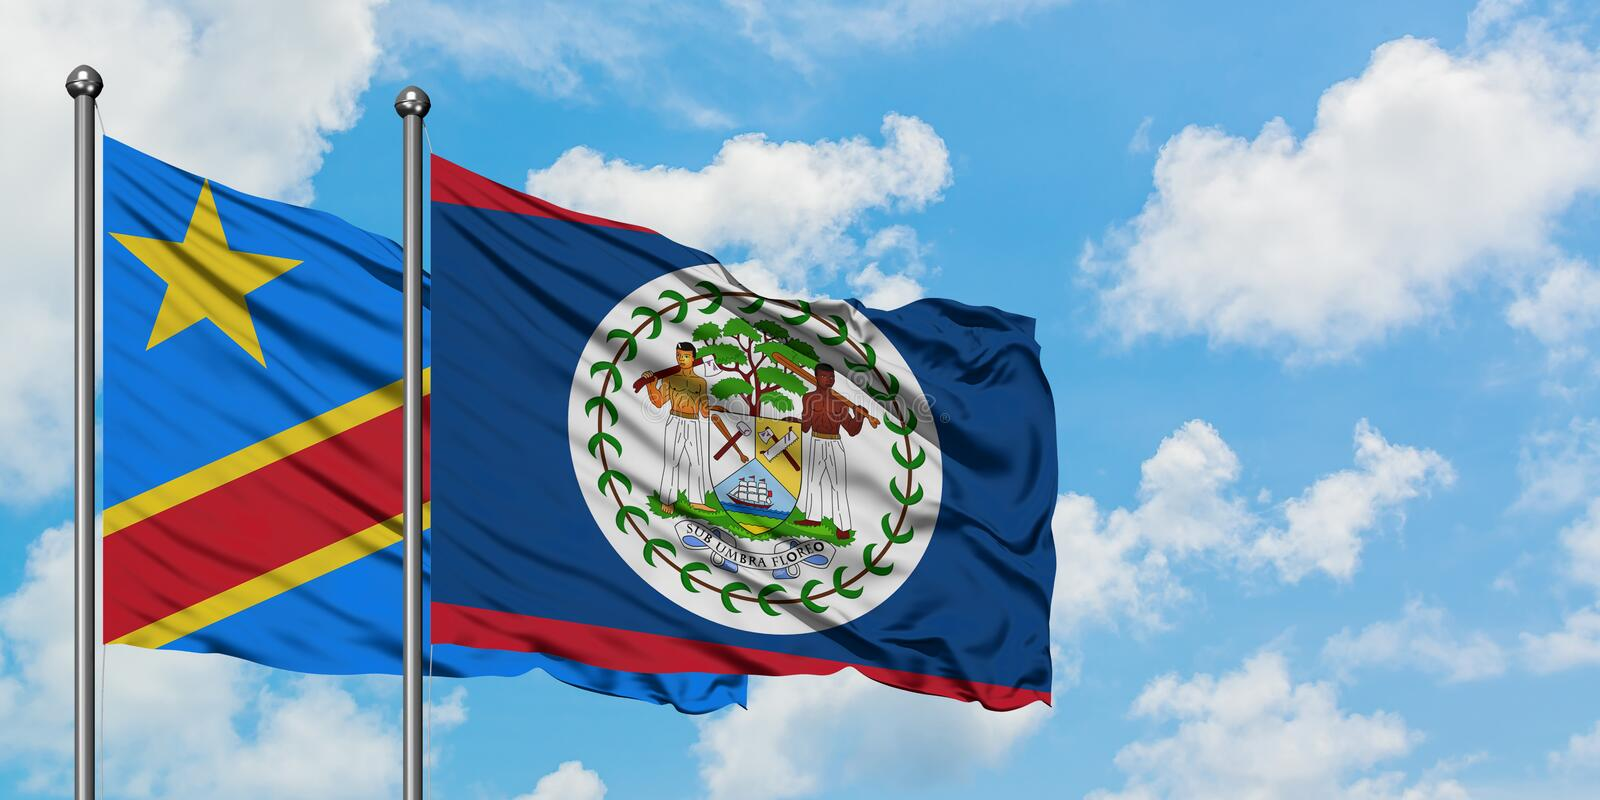 Congo and Belize flag waving in the wind against white cloudy blue sky together. Diplomacy concept, international relations. Consul, diplomat, ambassador royalty free stock image